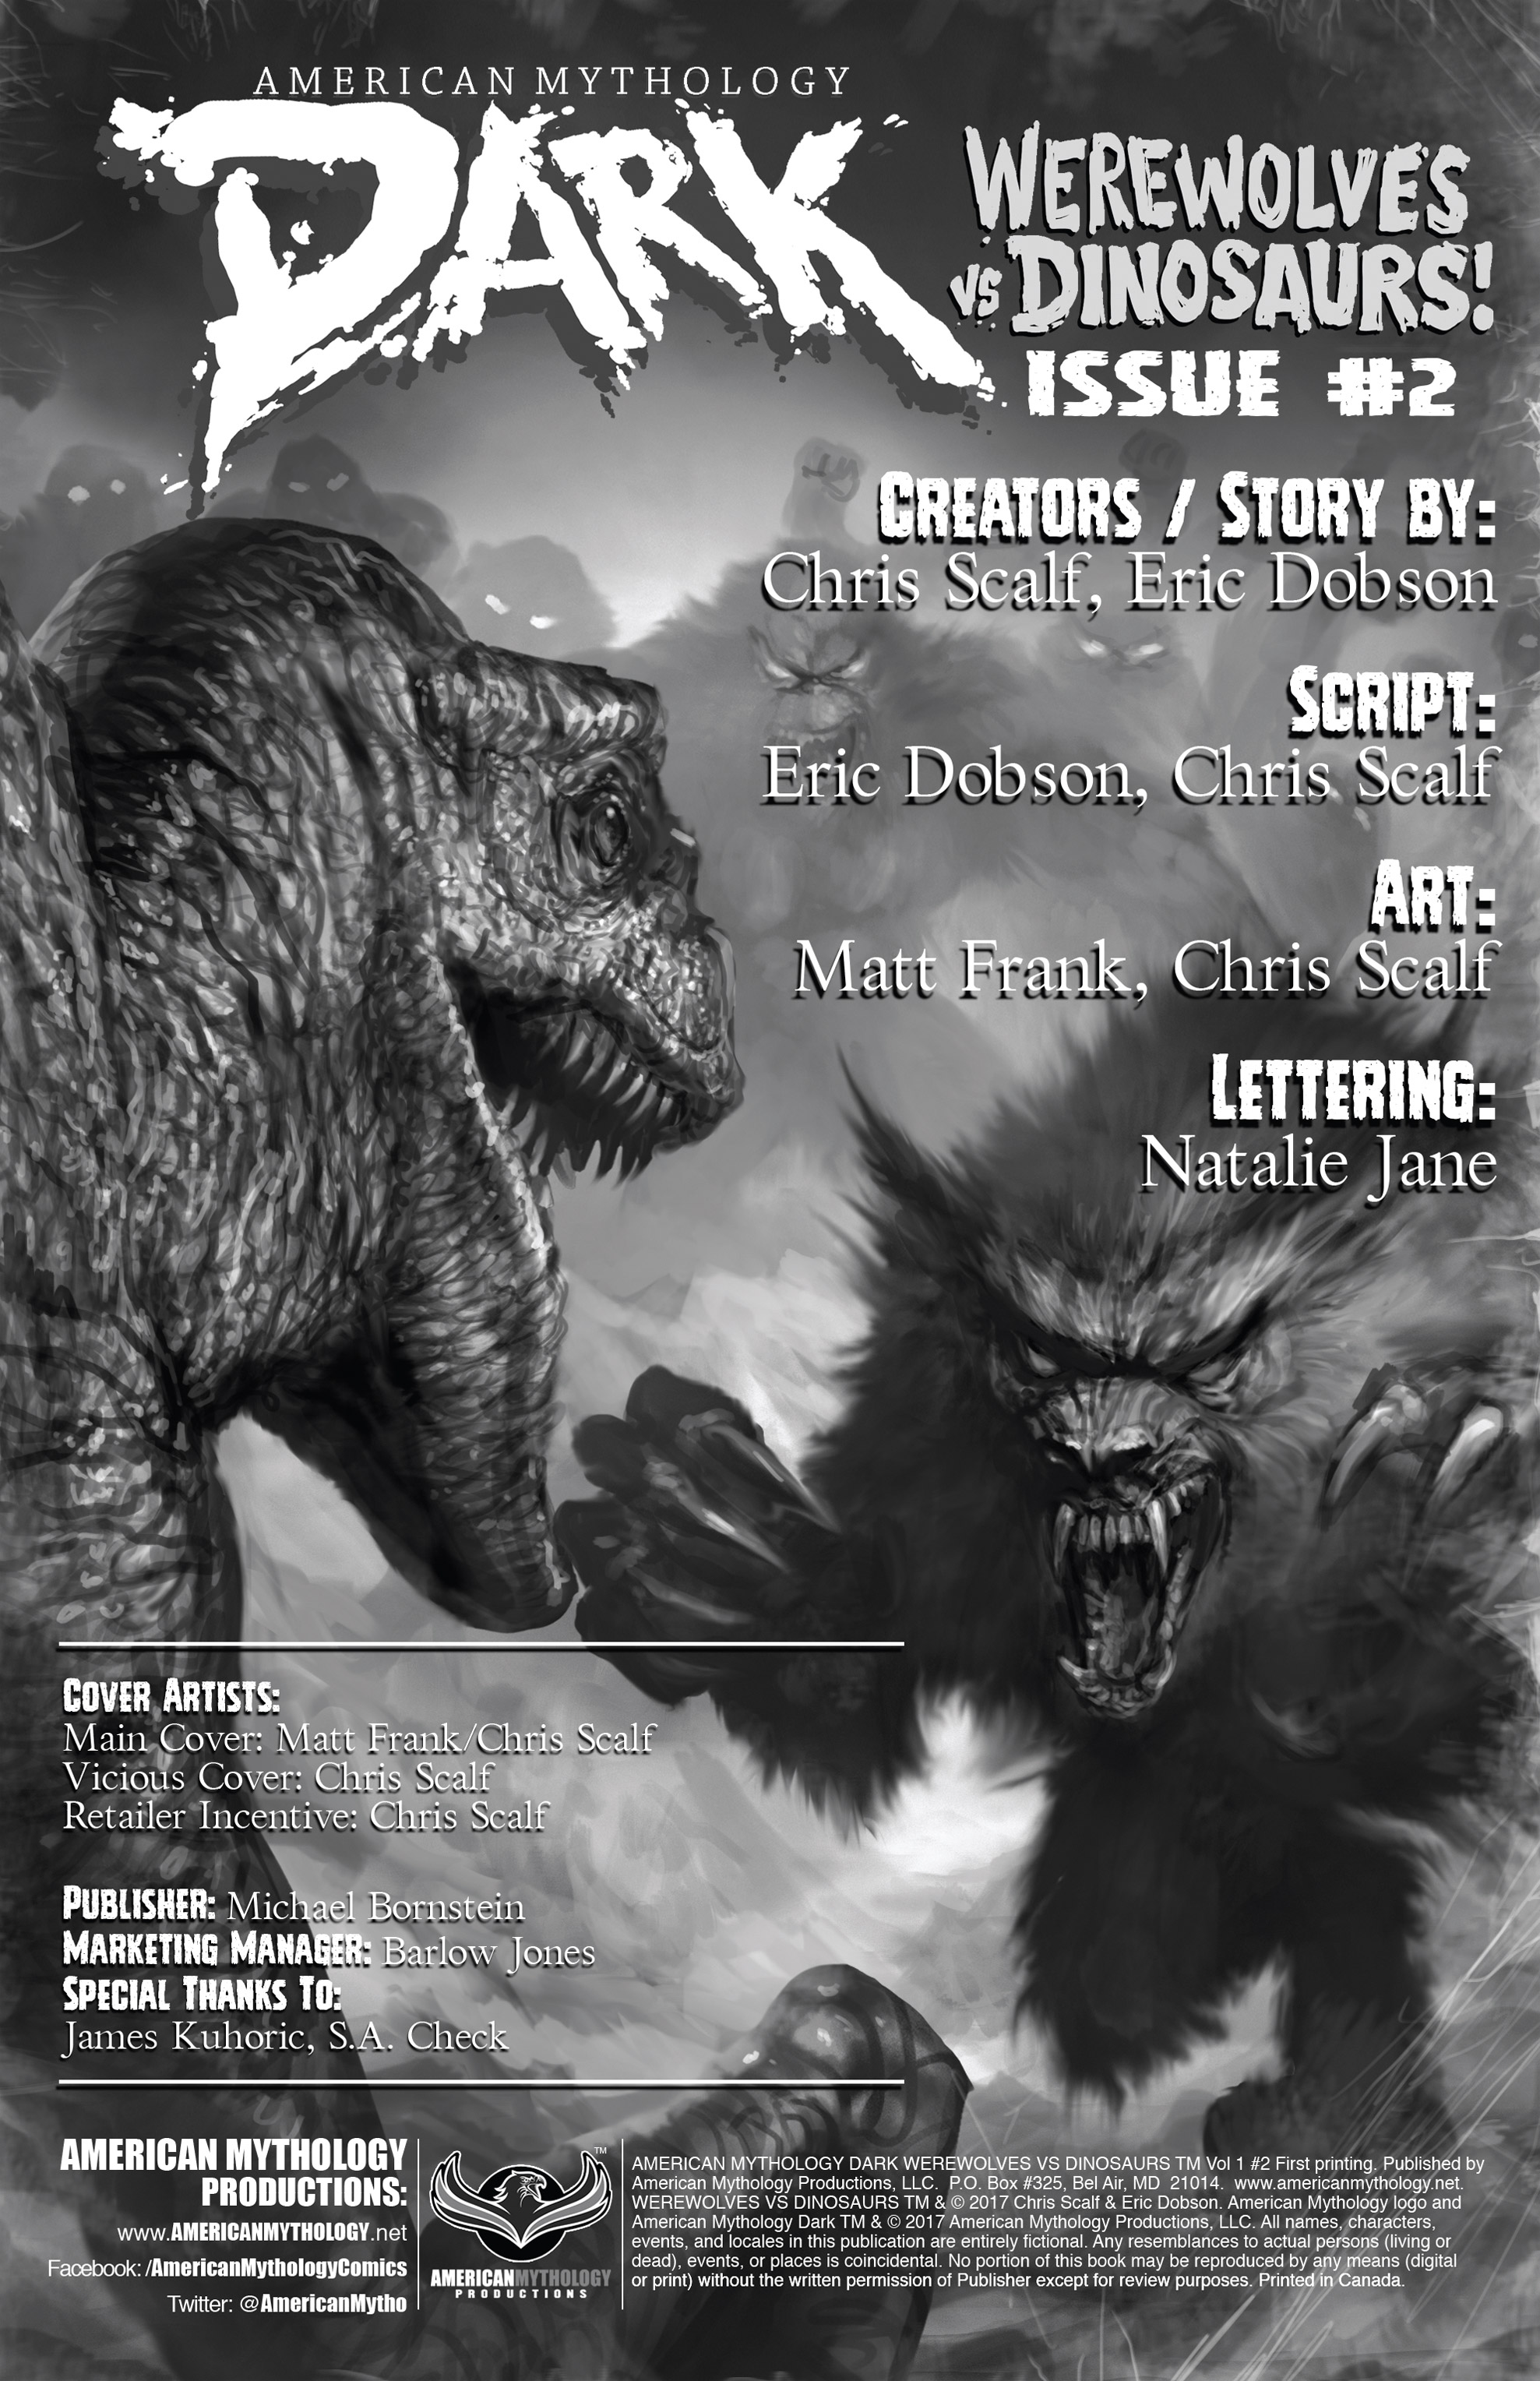 Read online American Mythology Dark: Werewolves vs Dinosaurs comic -  Issue #2 - 2